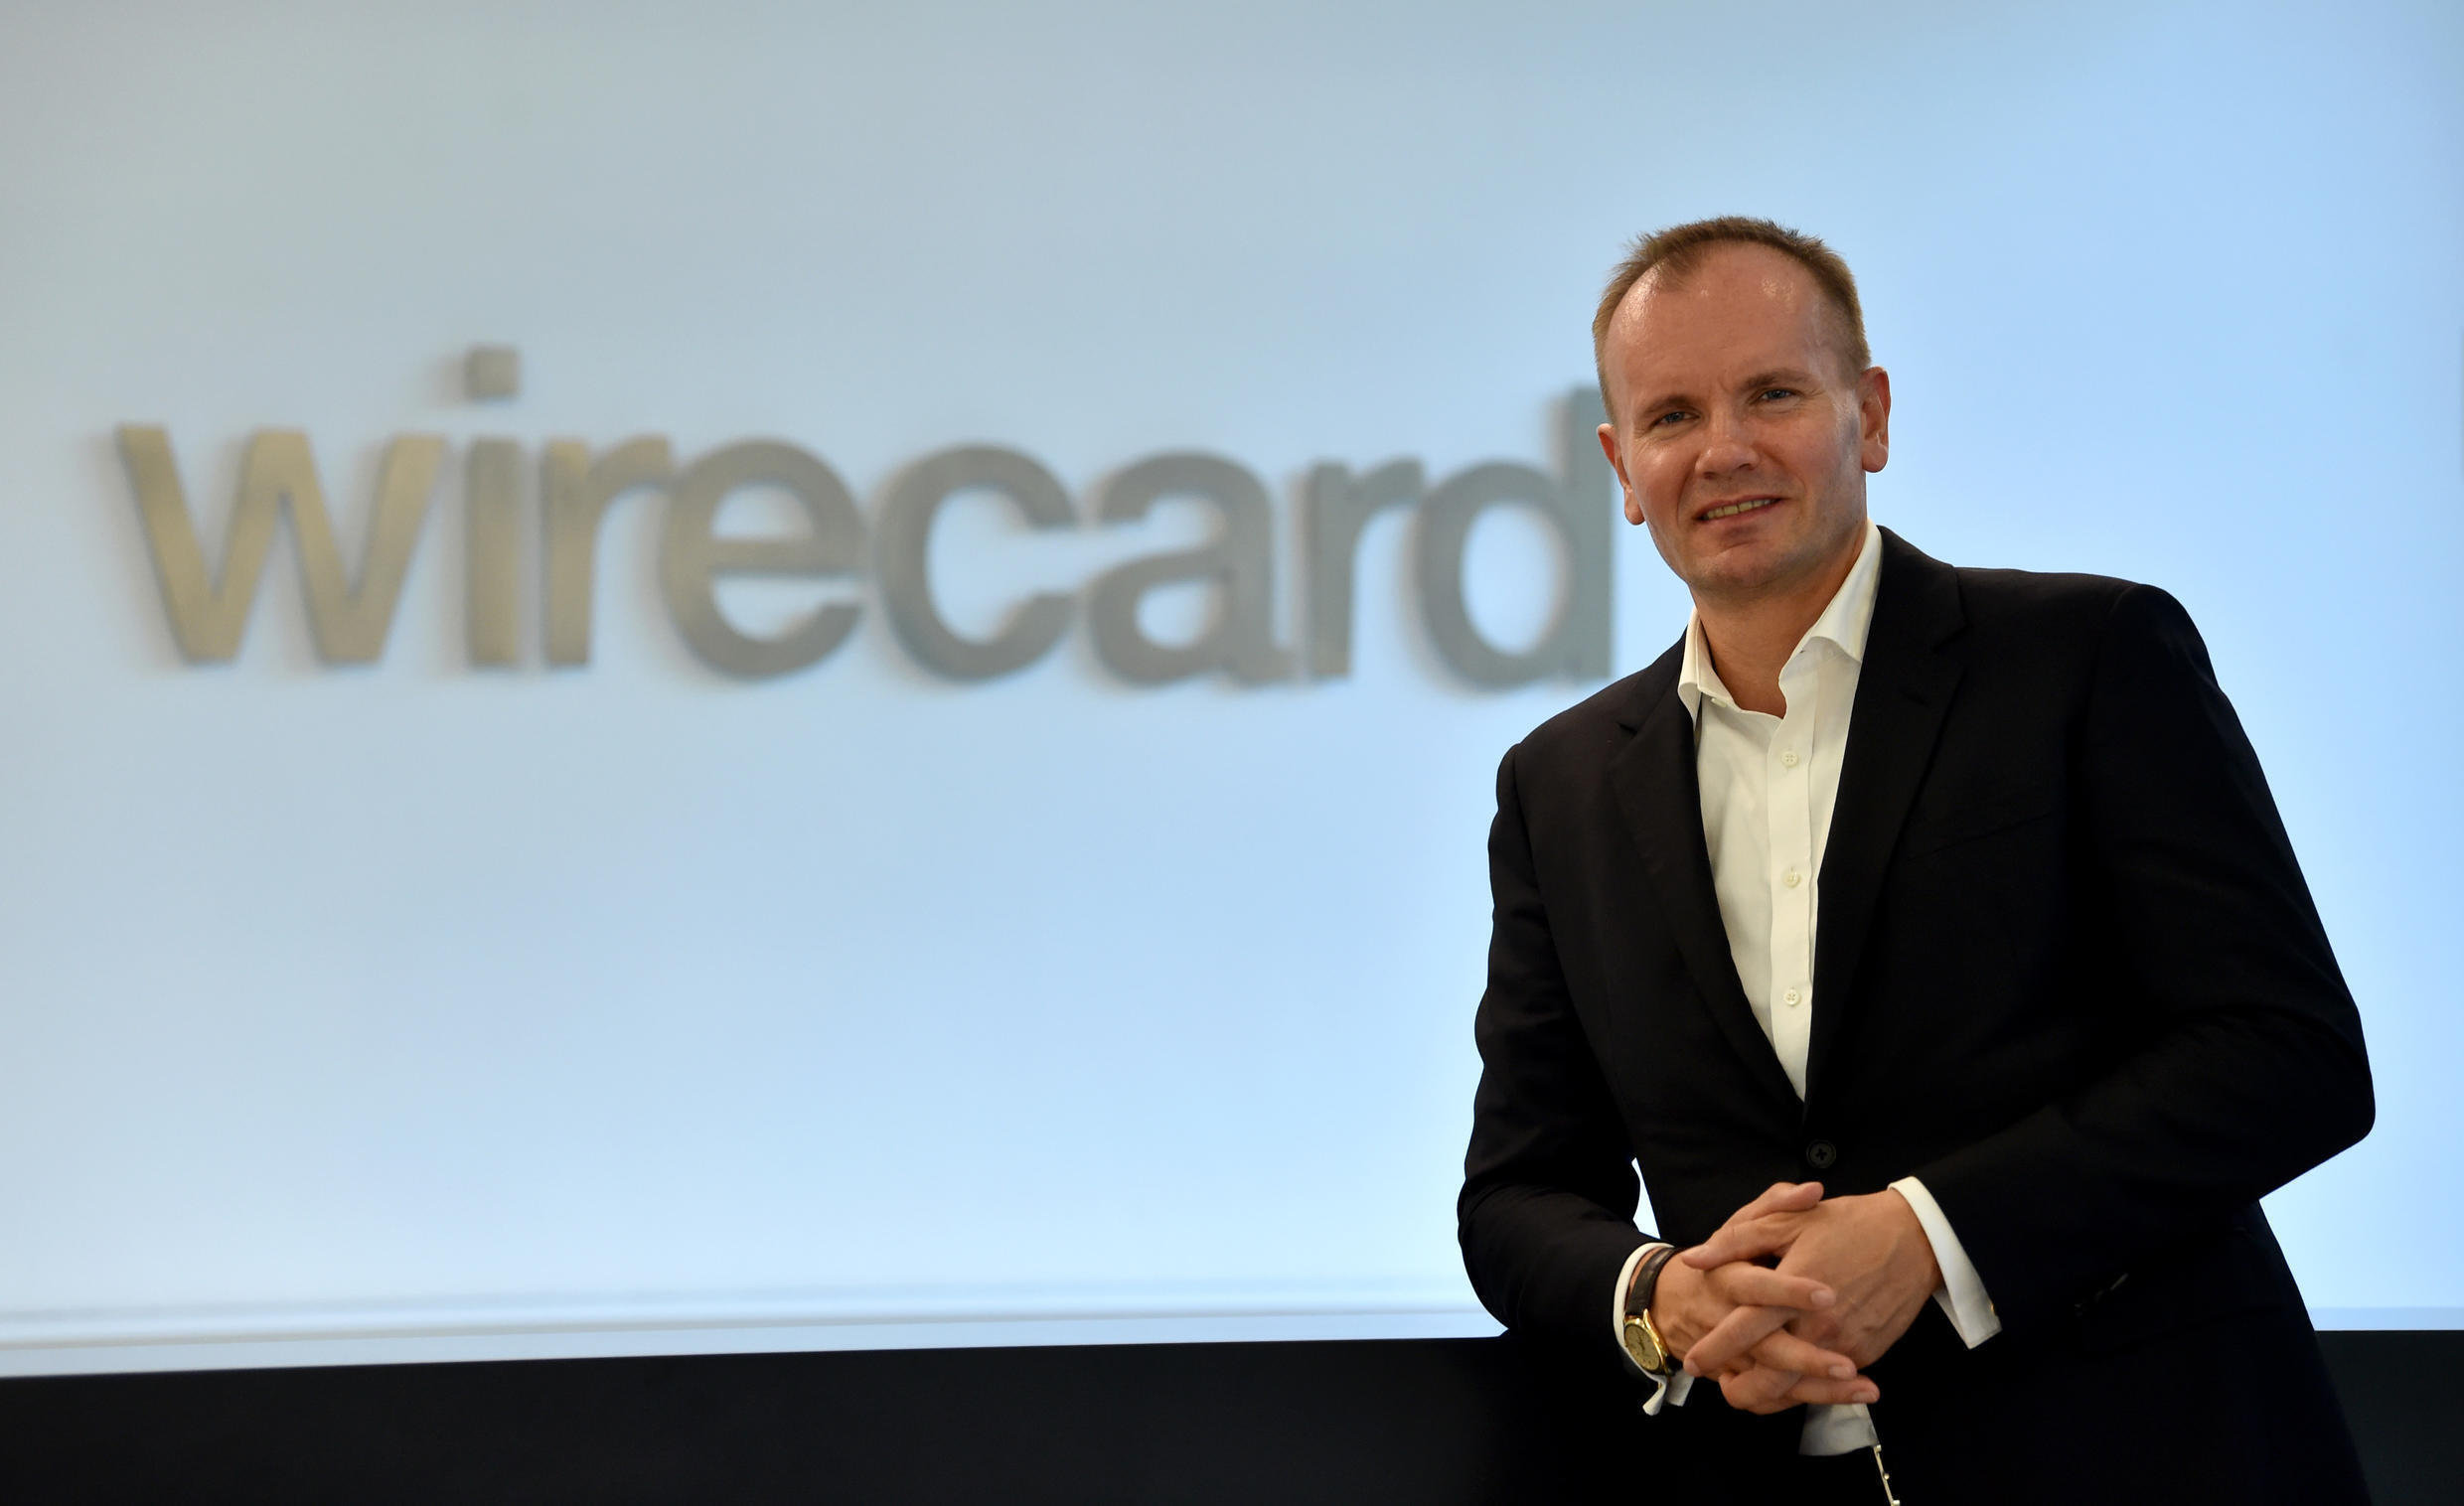 Markus Braun, founder and chief executive of scandal-hit technology and financial services company Wirecard, has quit with immediate effect